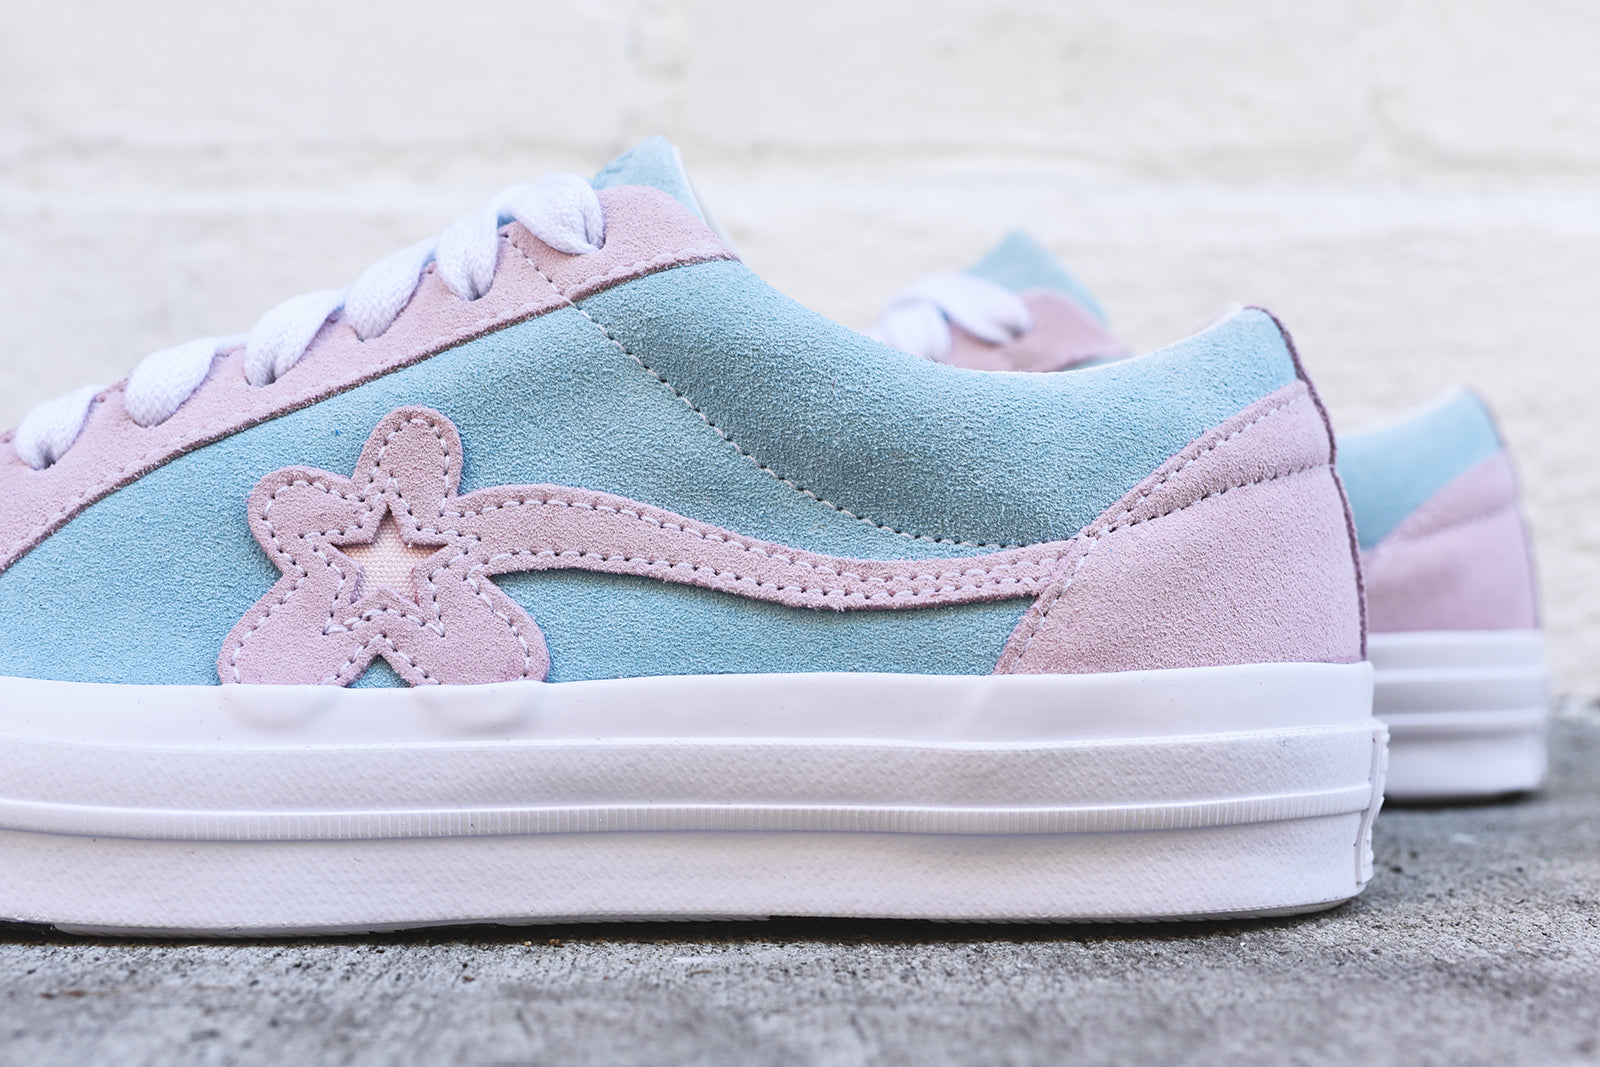 7b238c2a5104ee Converse x Golf Le Fleur One Star Pack – Kith